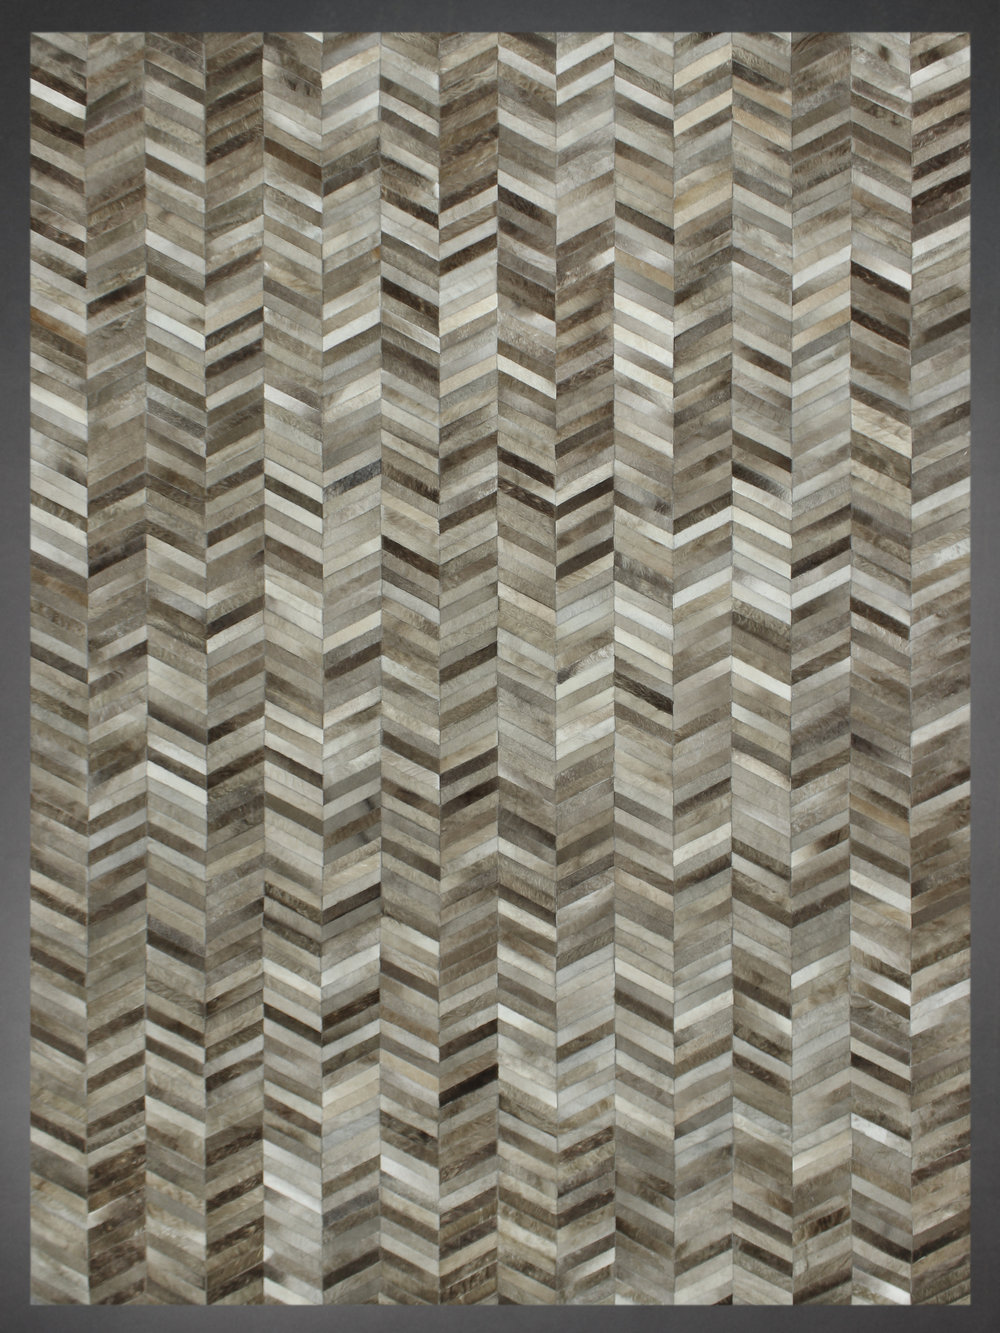 Contemporary designed fur rug in Herringbone style with grays, browns, and taupe.